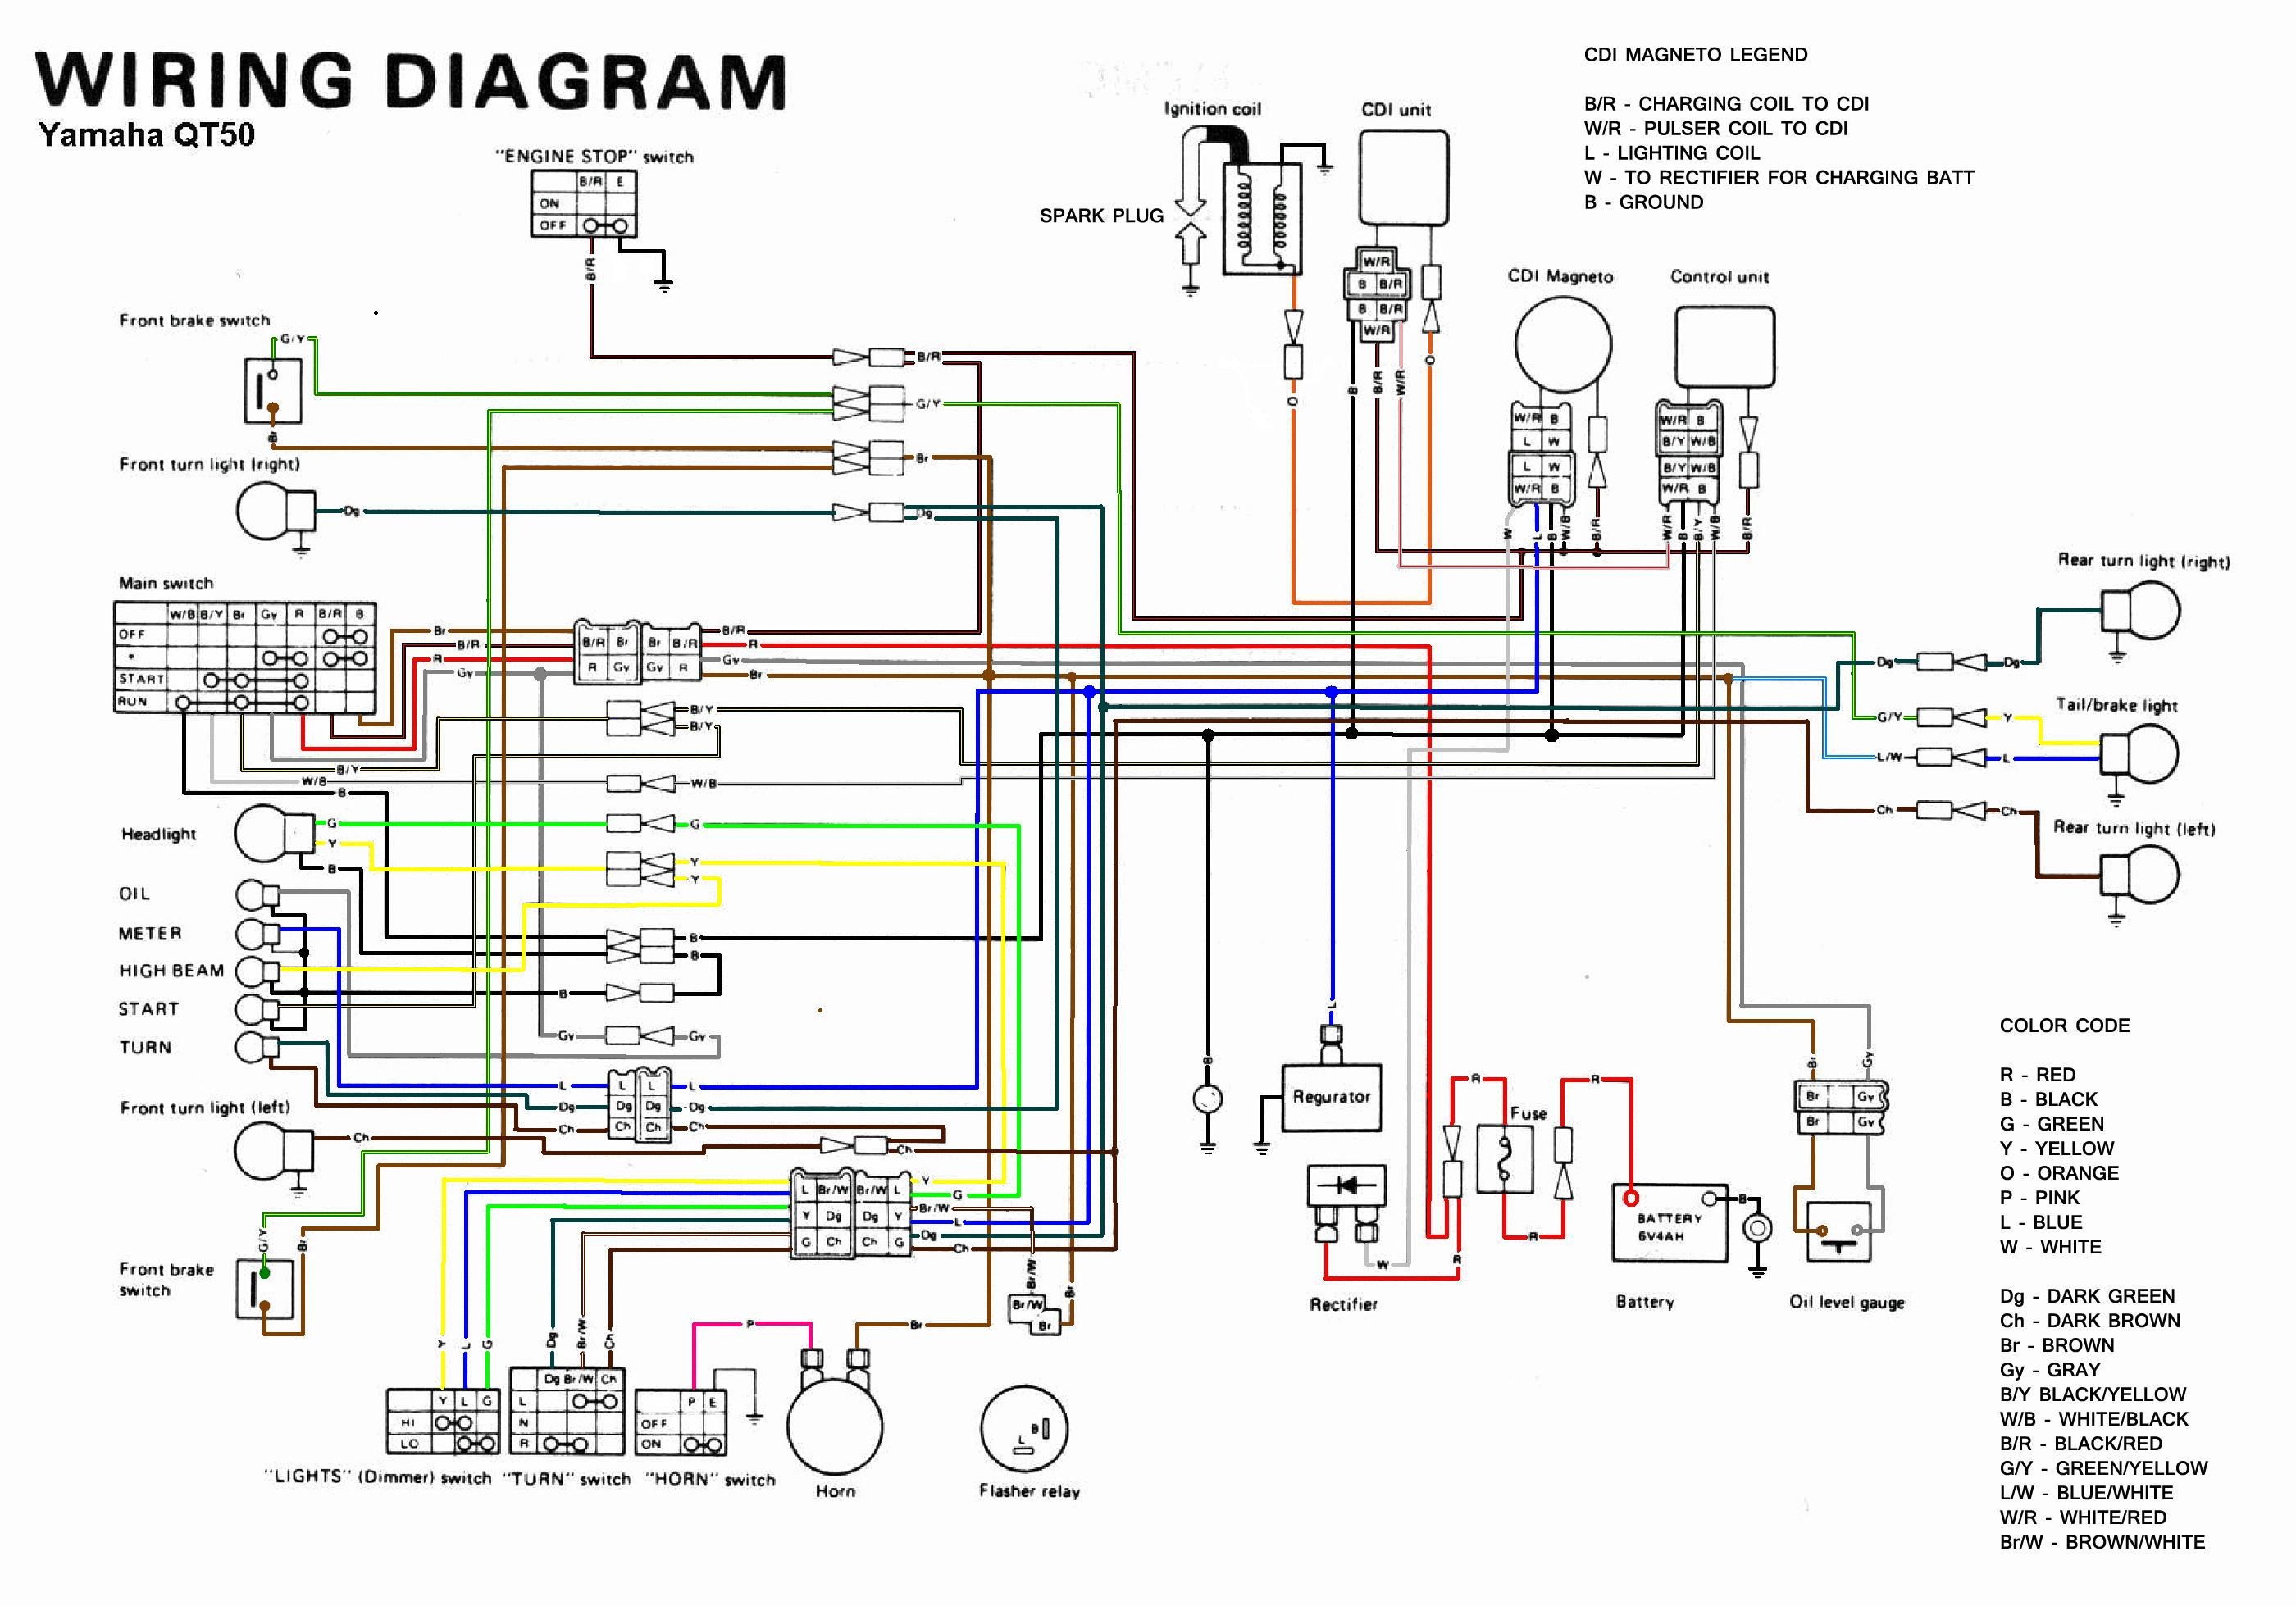 yamaha qt50 color coded schematic — Moped Army